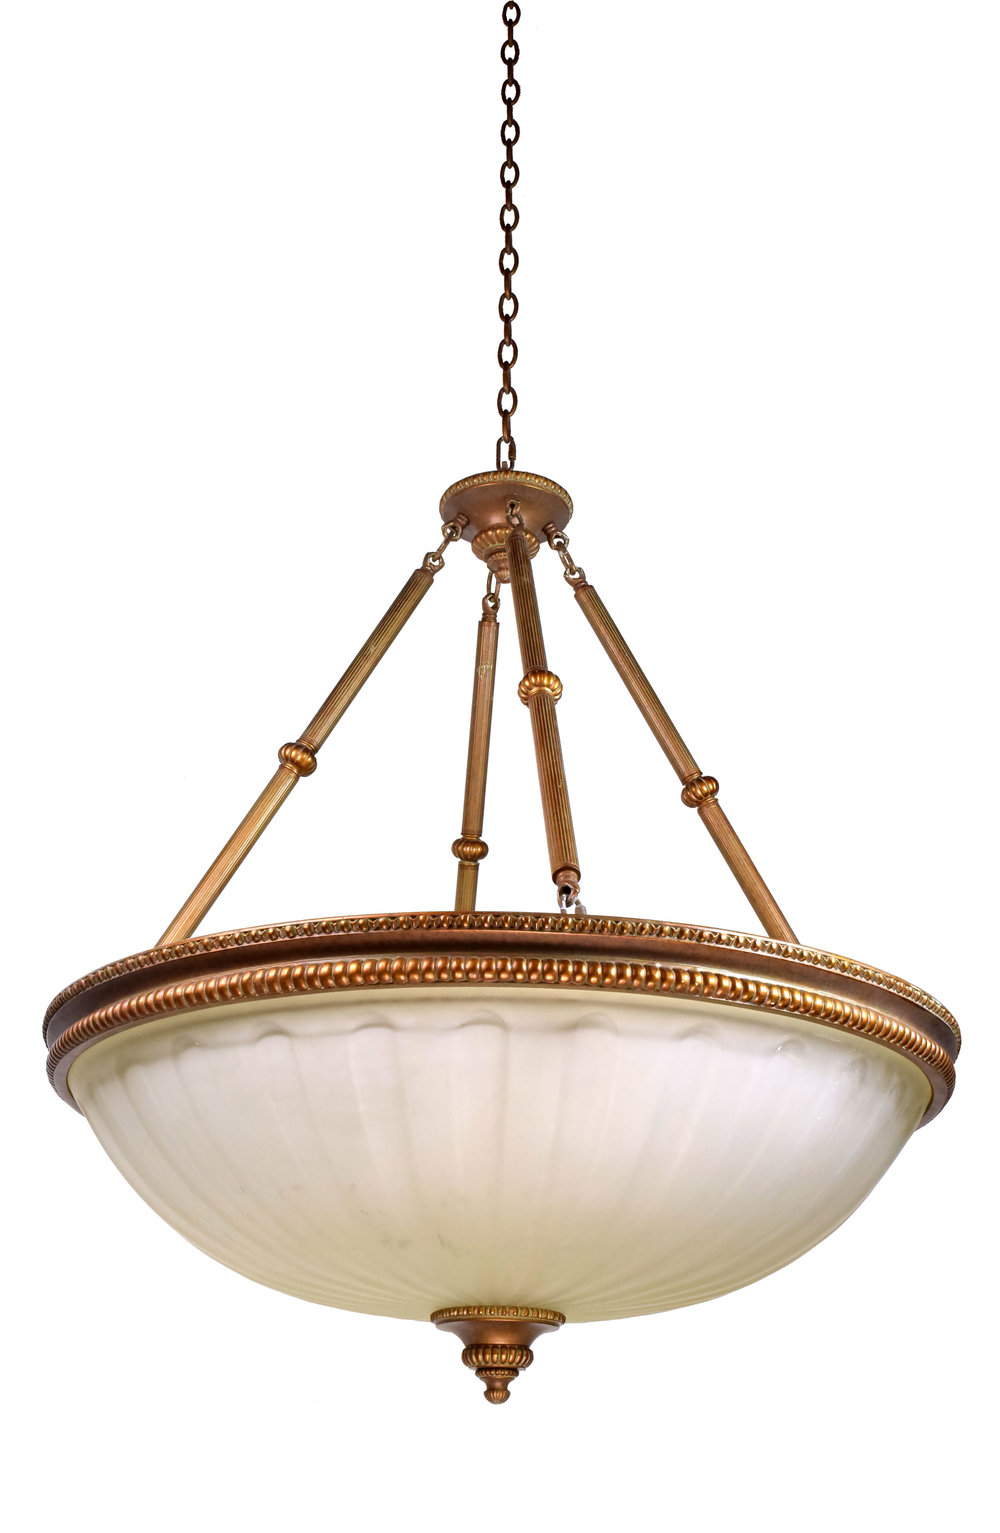 47169-large-bowl-fixture-lower-angle.jpg